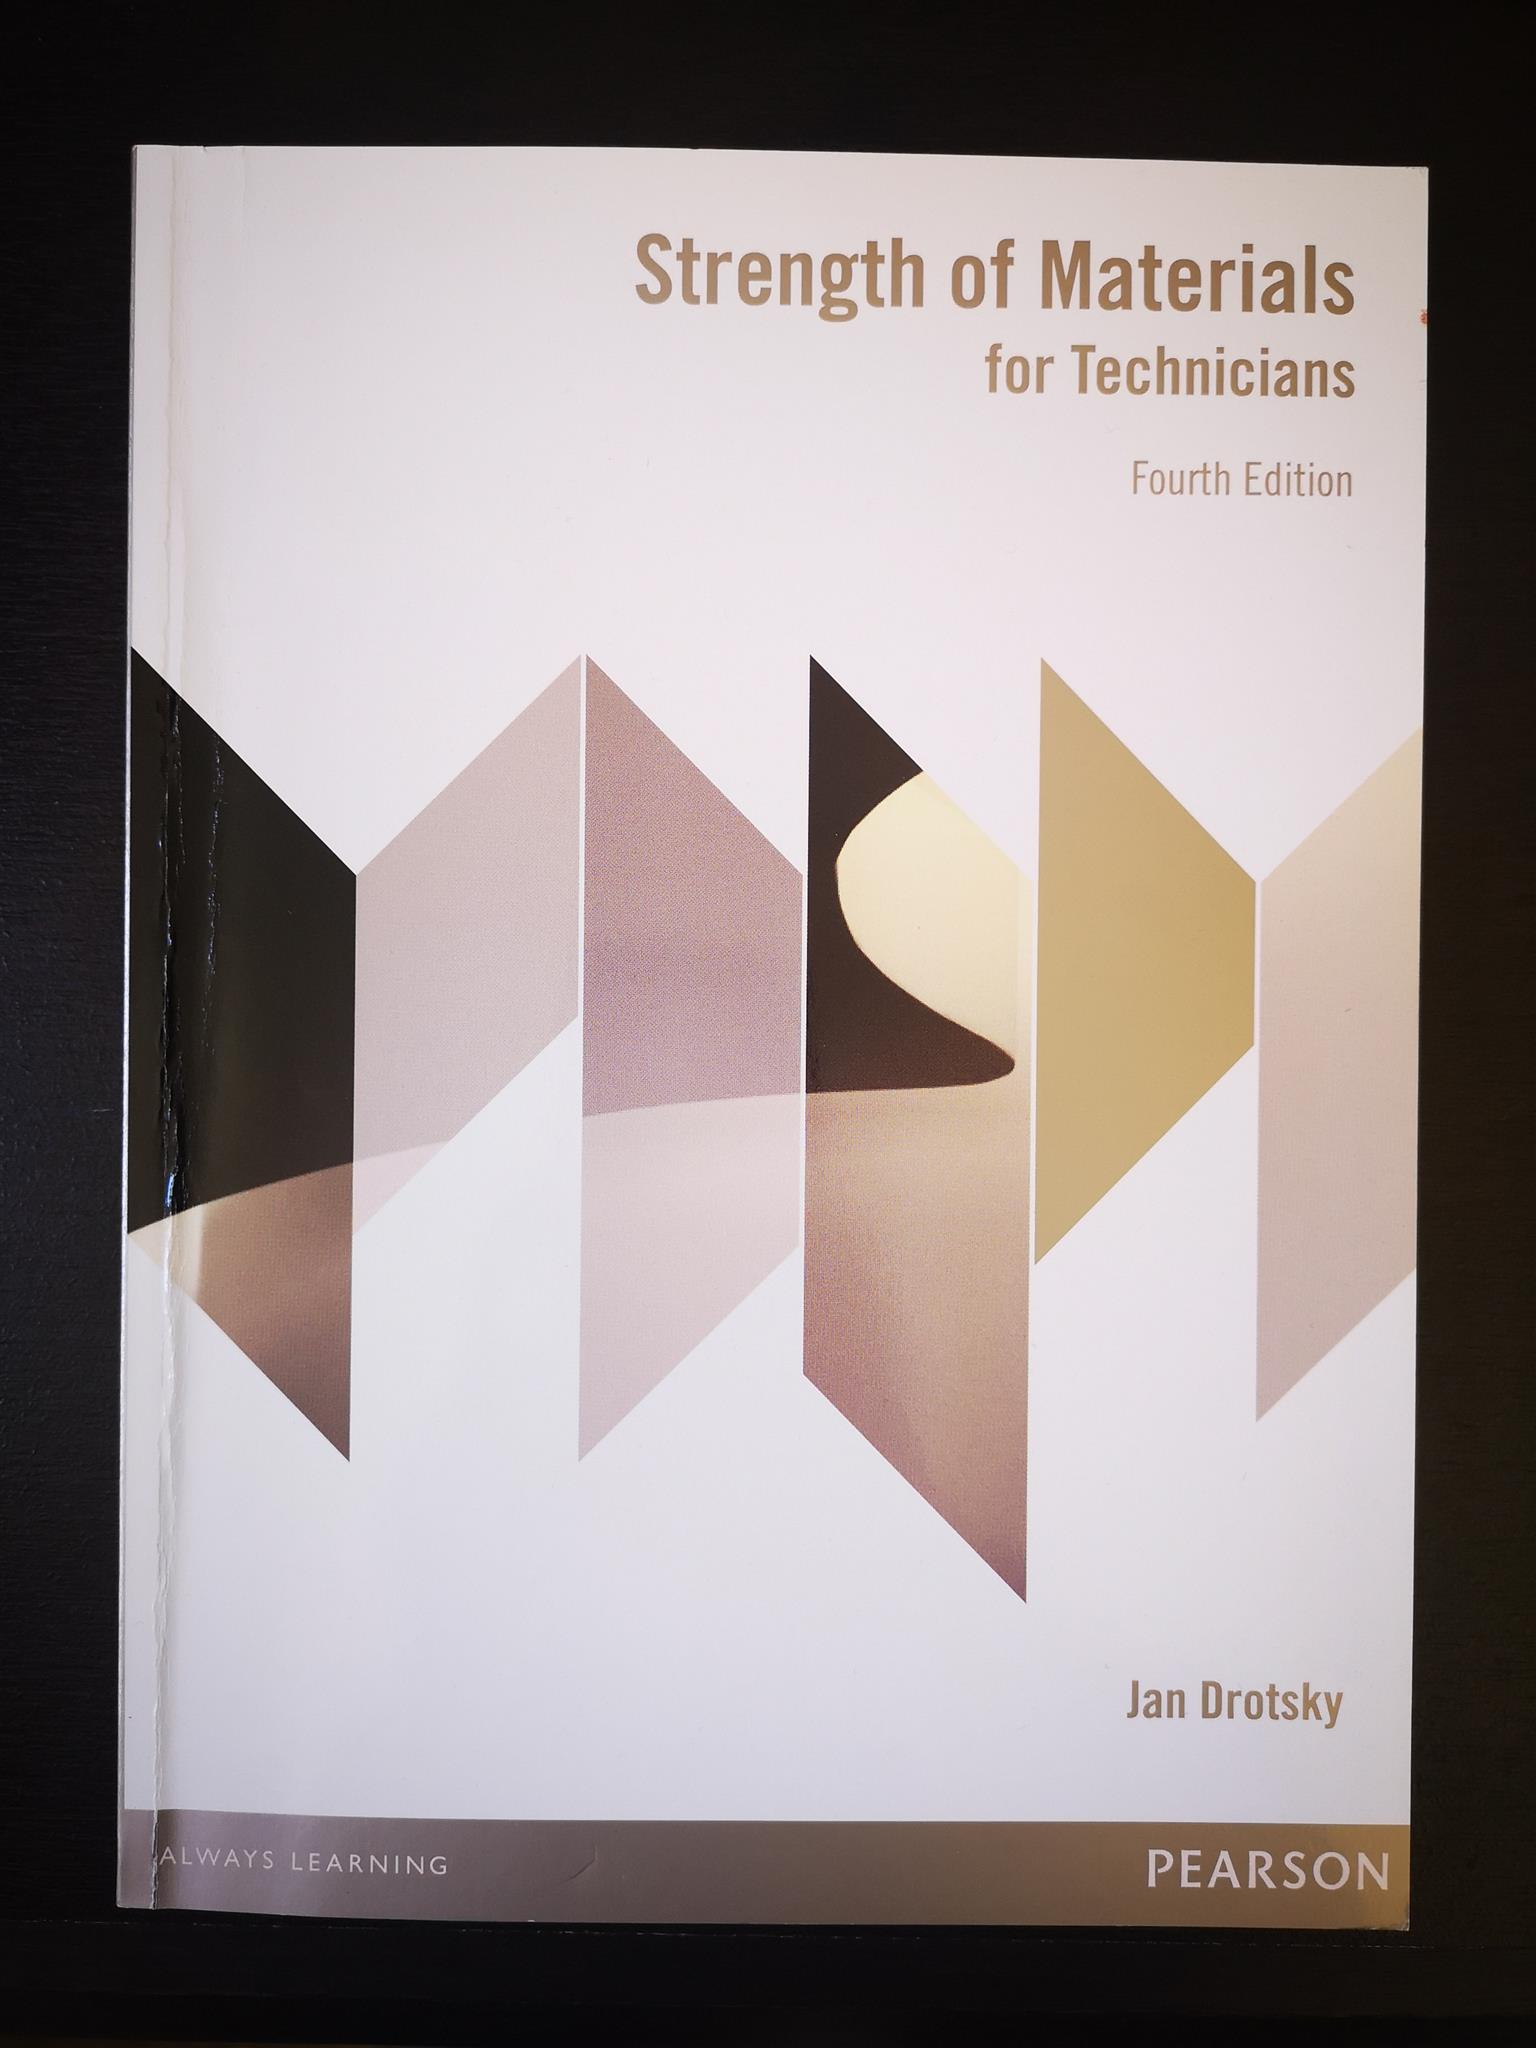 Strength of Materials for Technicians